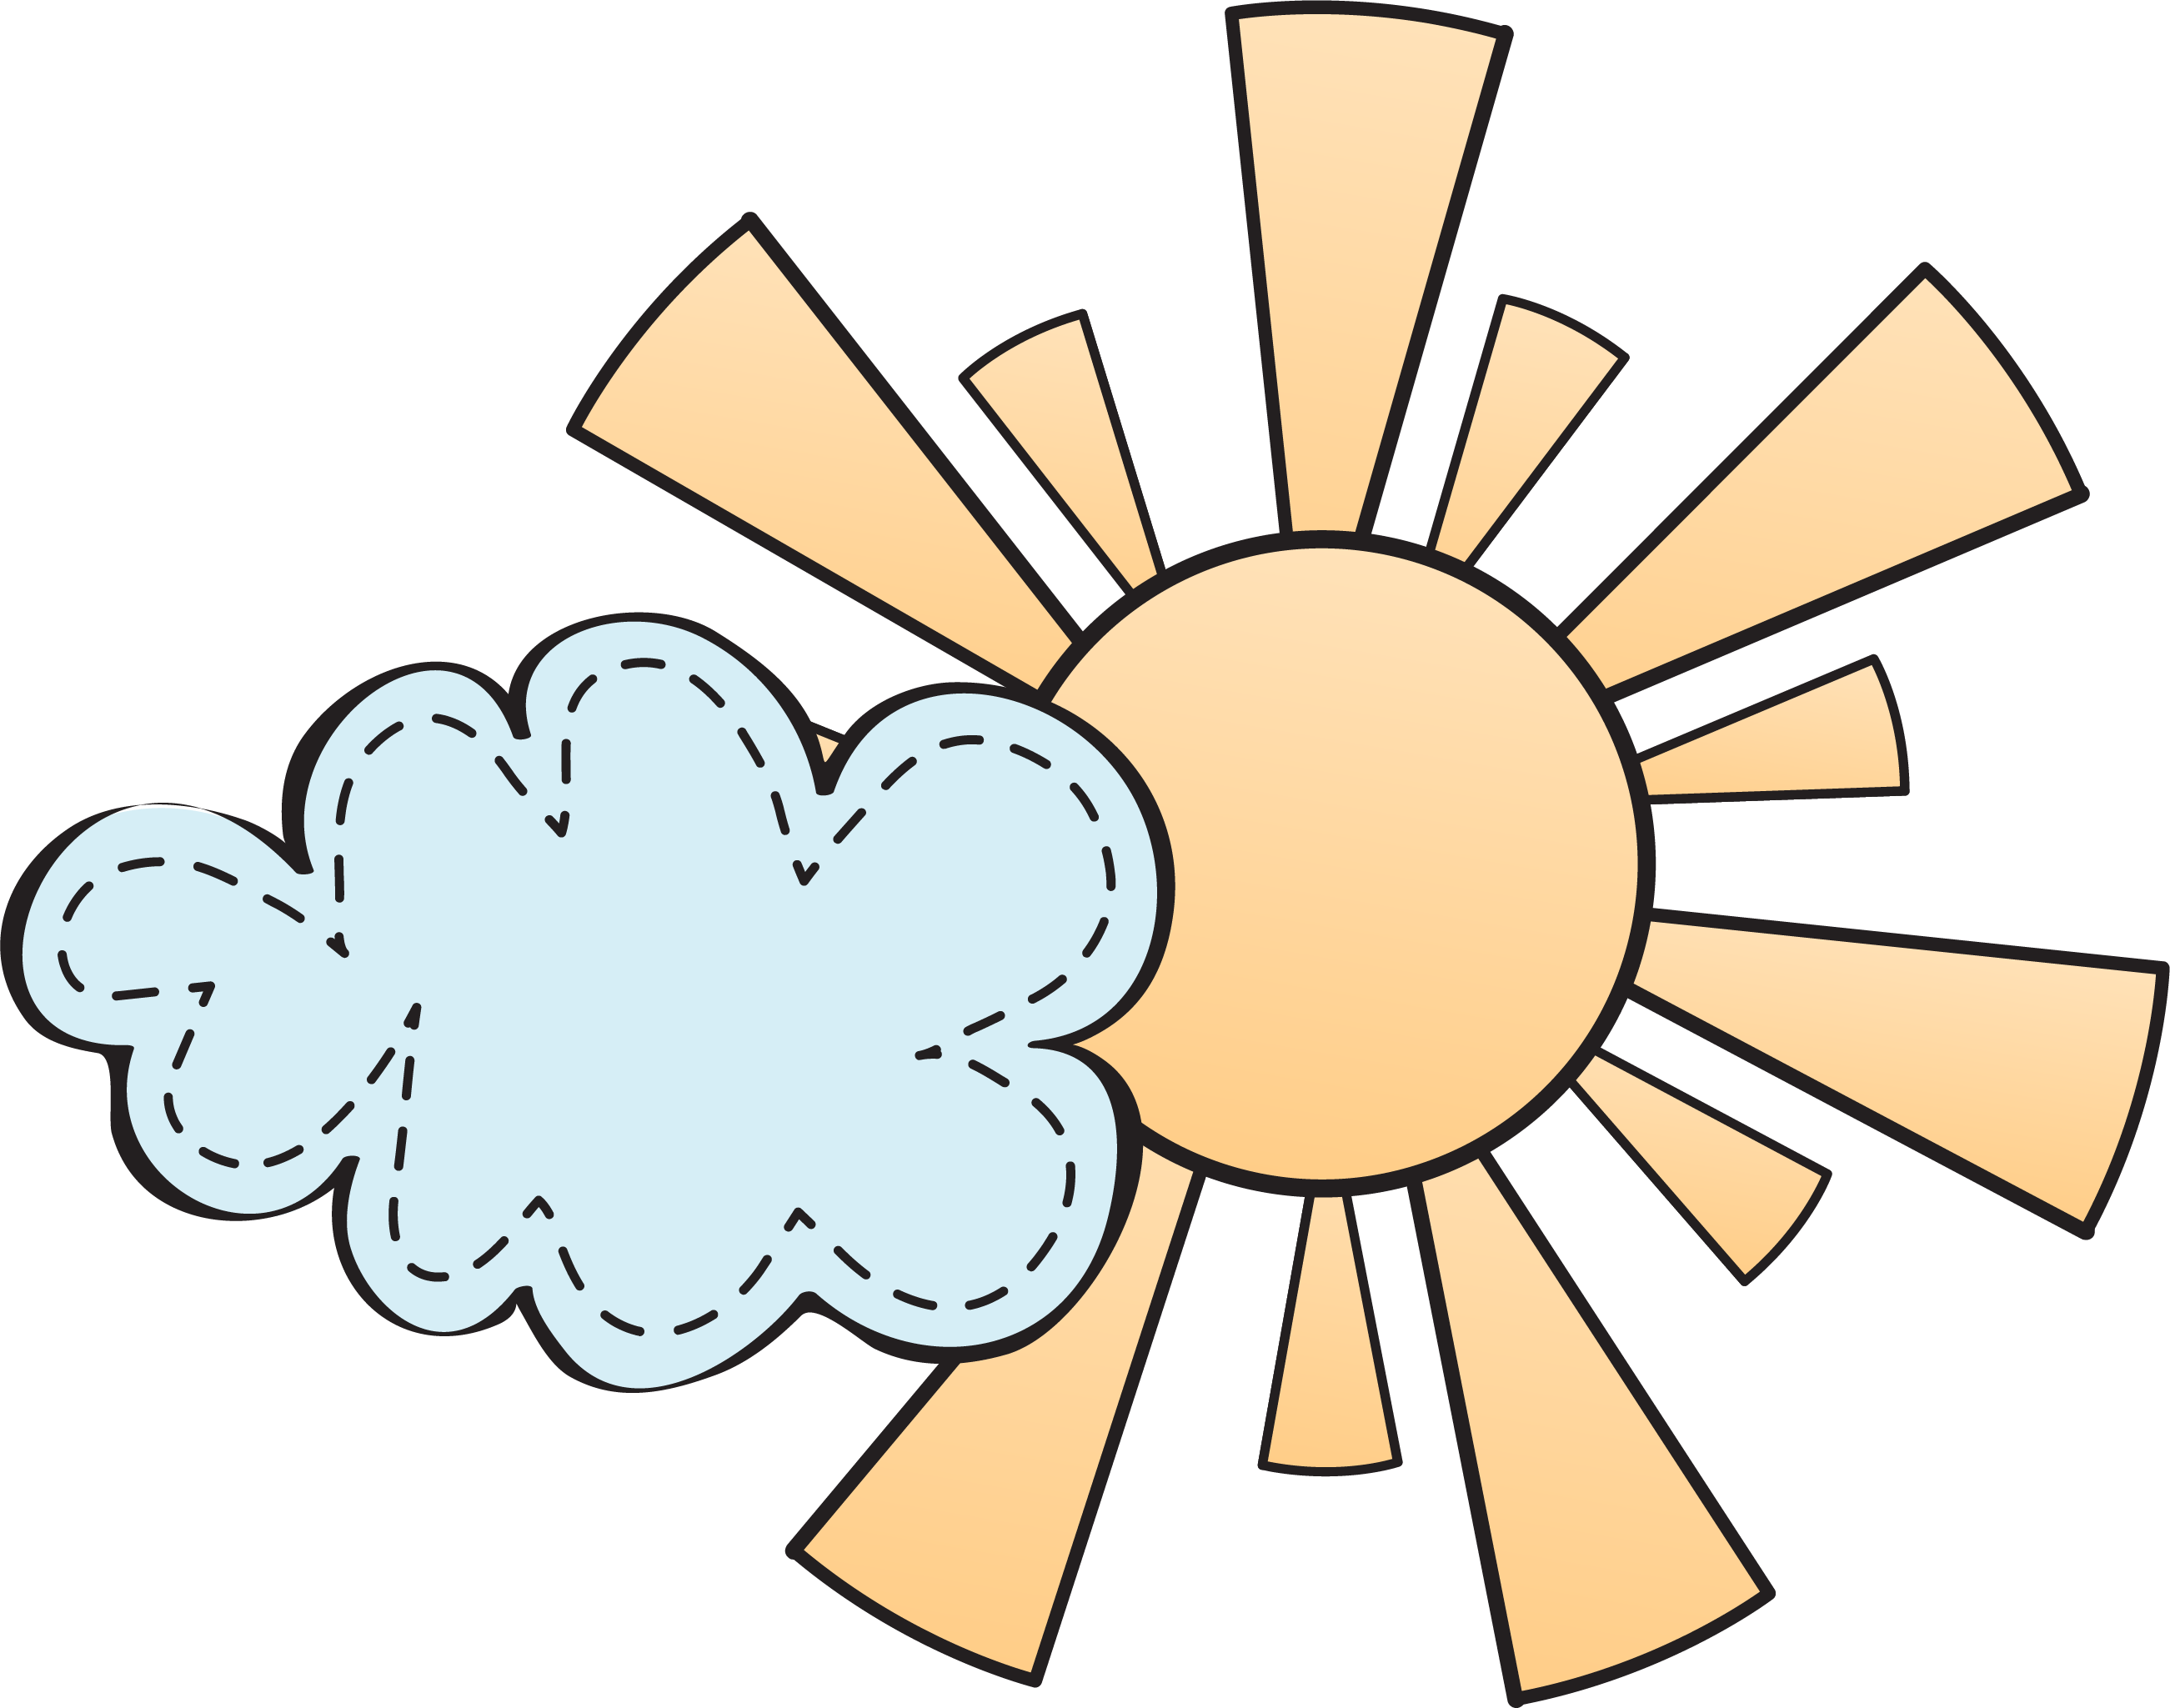 Free clipart sun and clouds freeuse download Blue ribbon Award Clip art - Cartoon sun cartoon clouds 2603*2049 ... freeuse download